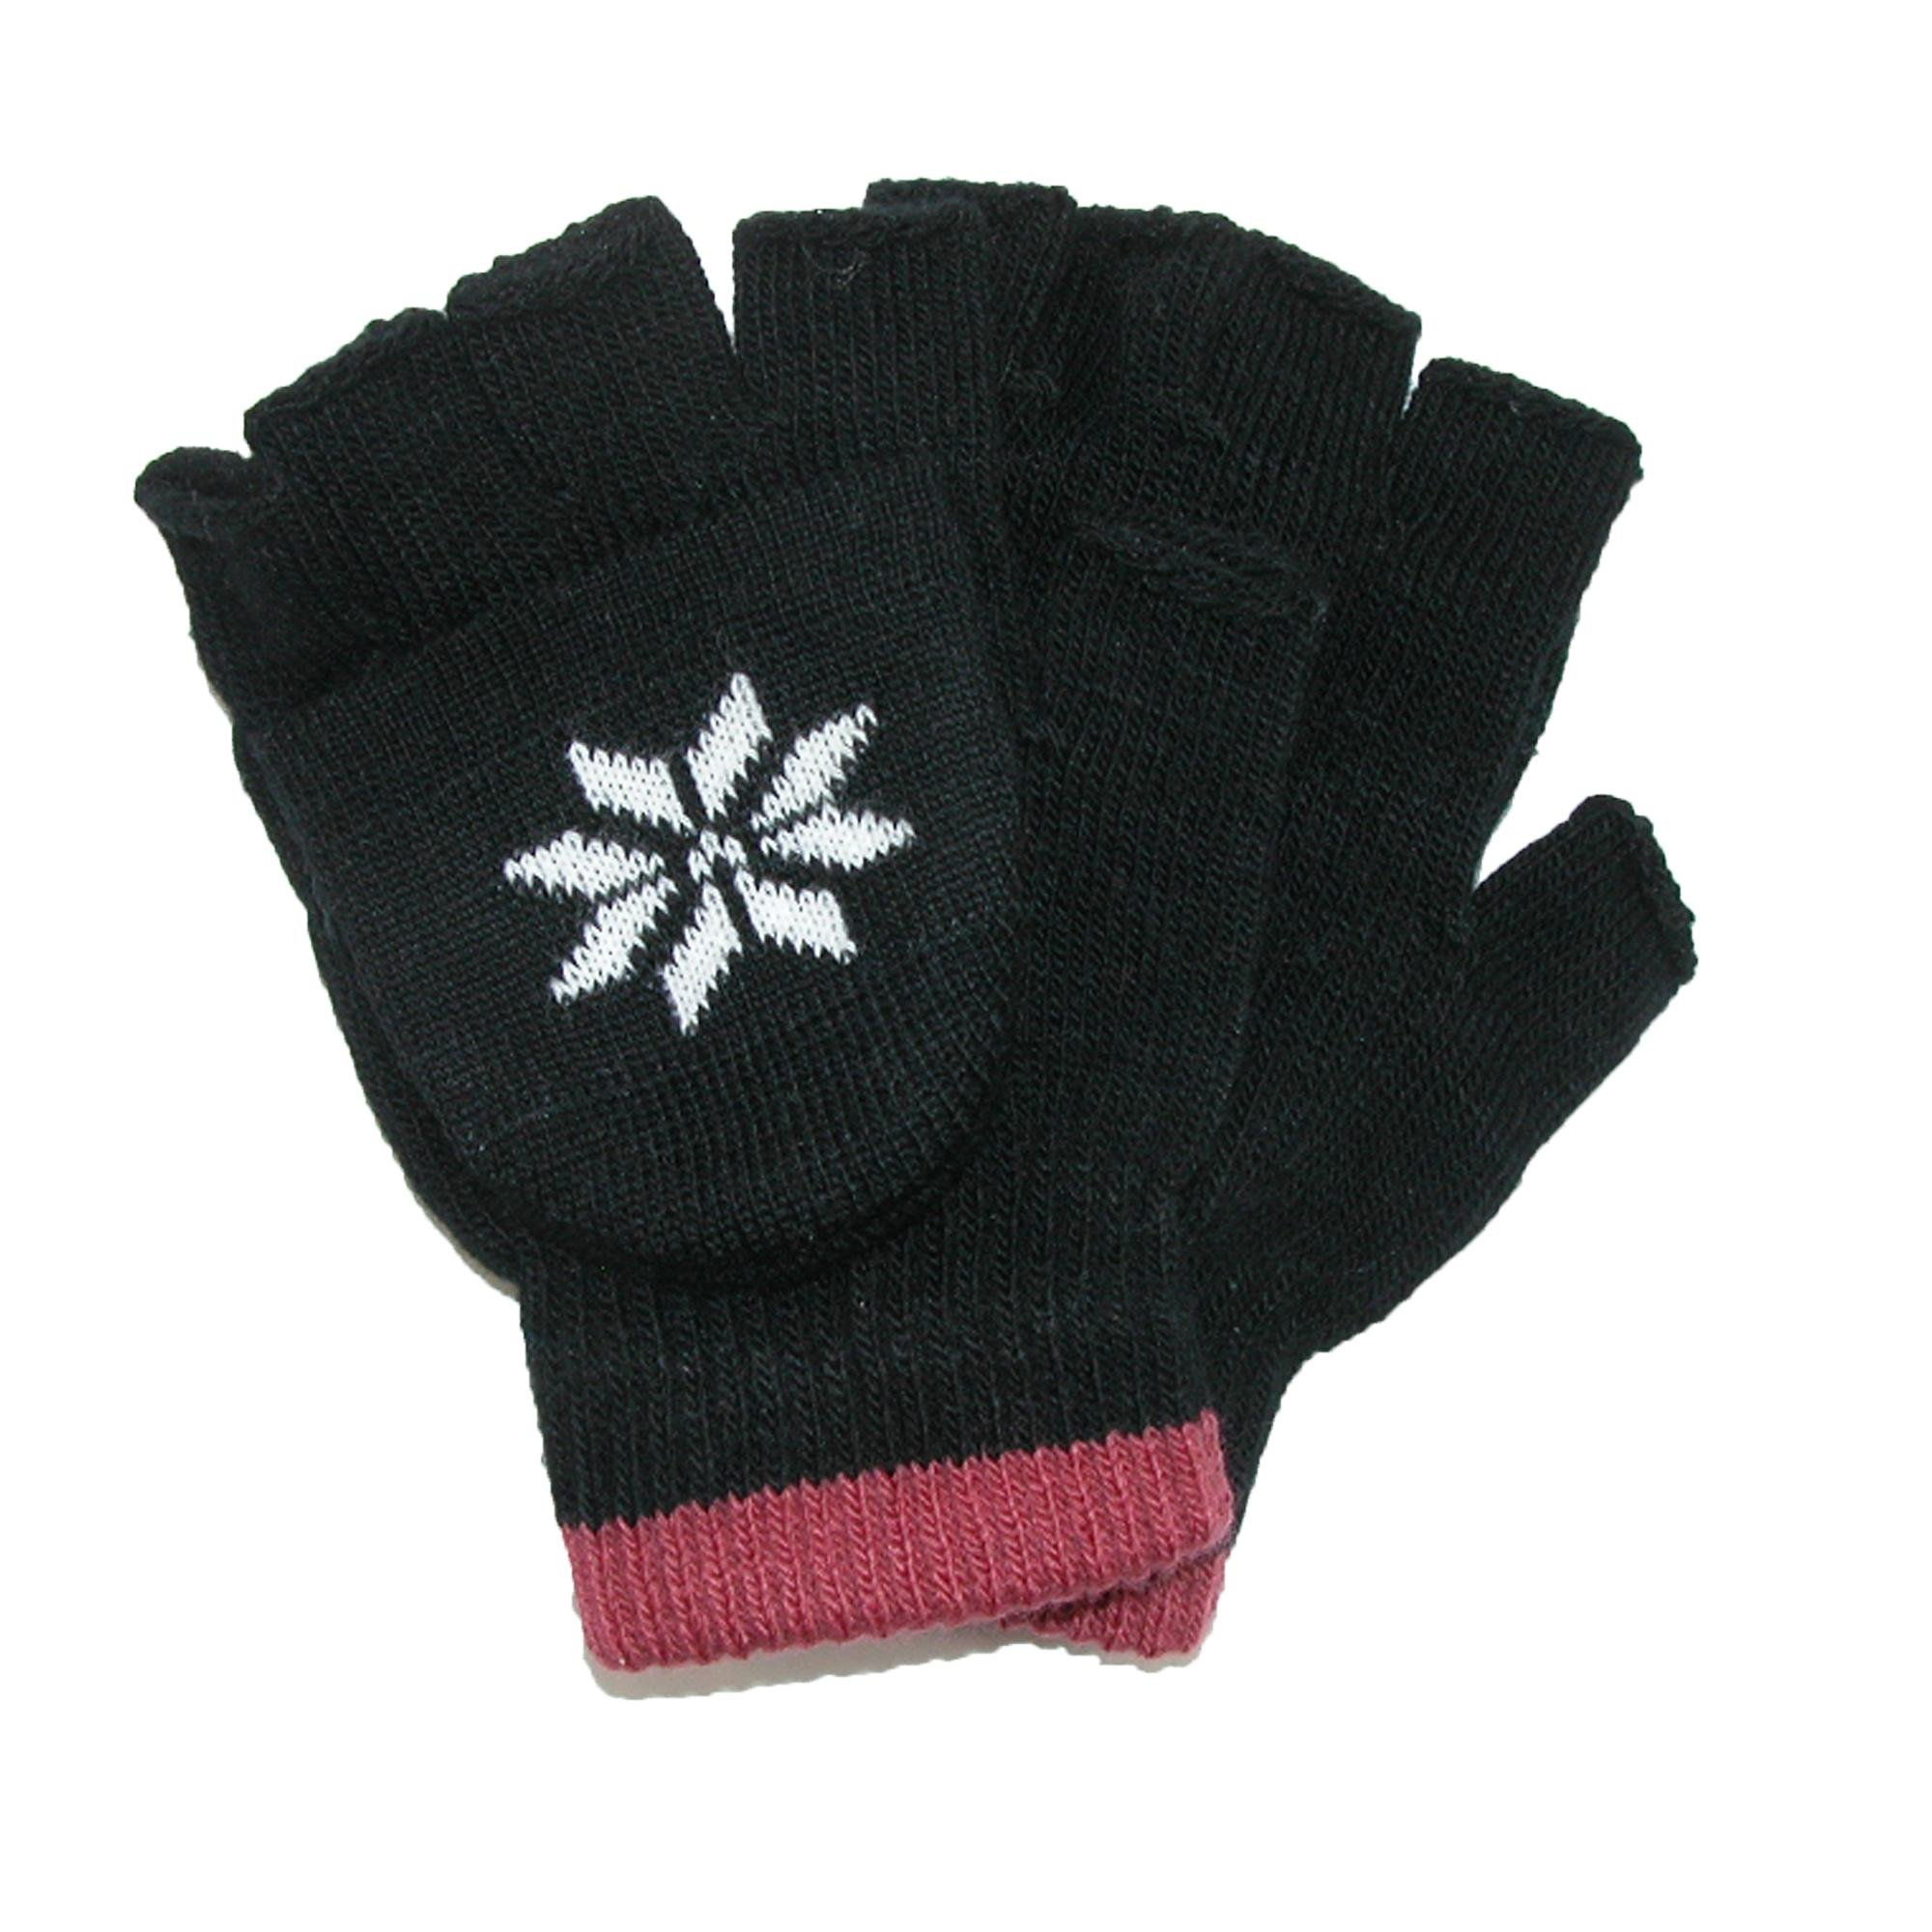 CTM Boys' Stretch Convertible Fingerless Winter Gloves, Black